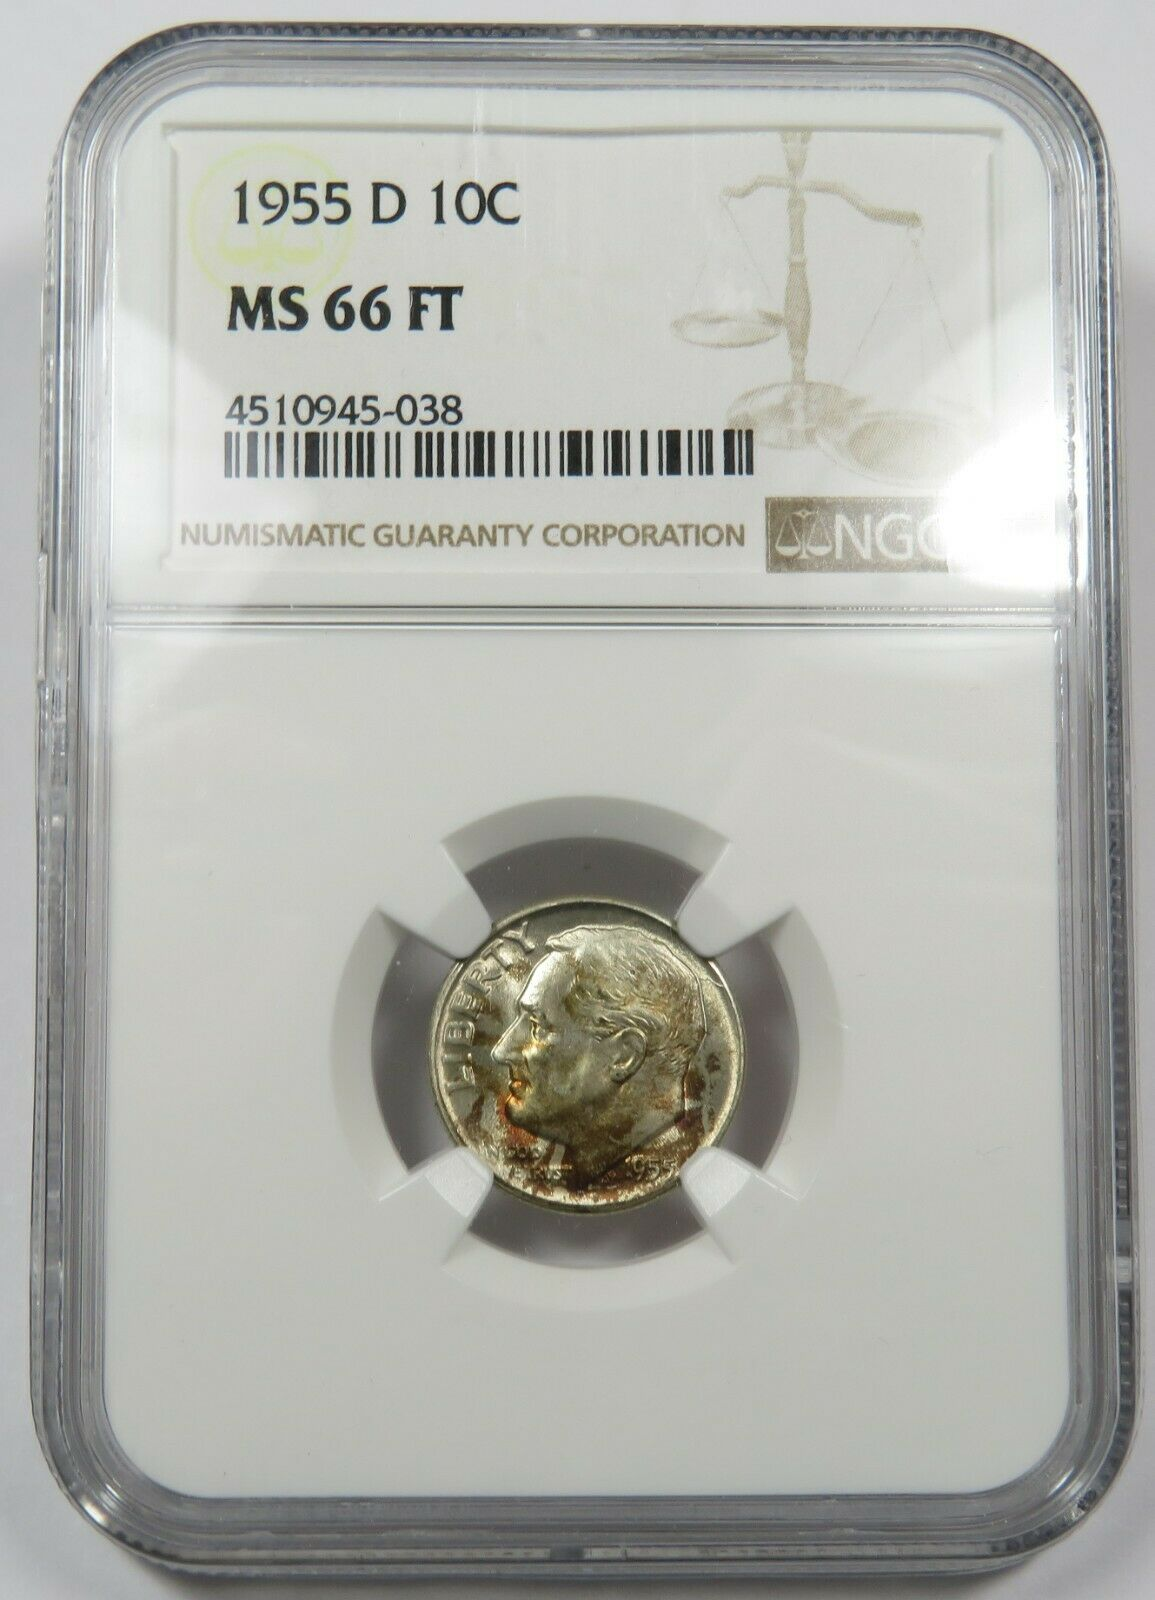 1955-D NGC MS 66 FT Full Torch Mint State Silver Roosevelt Dime US Coin #24883A